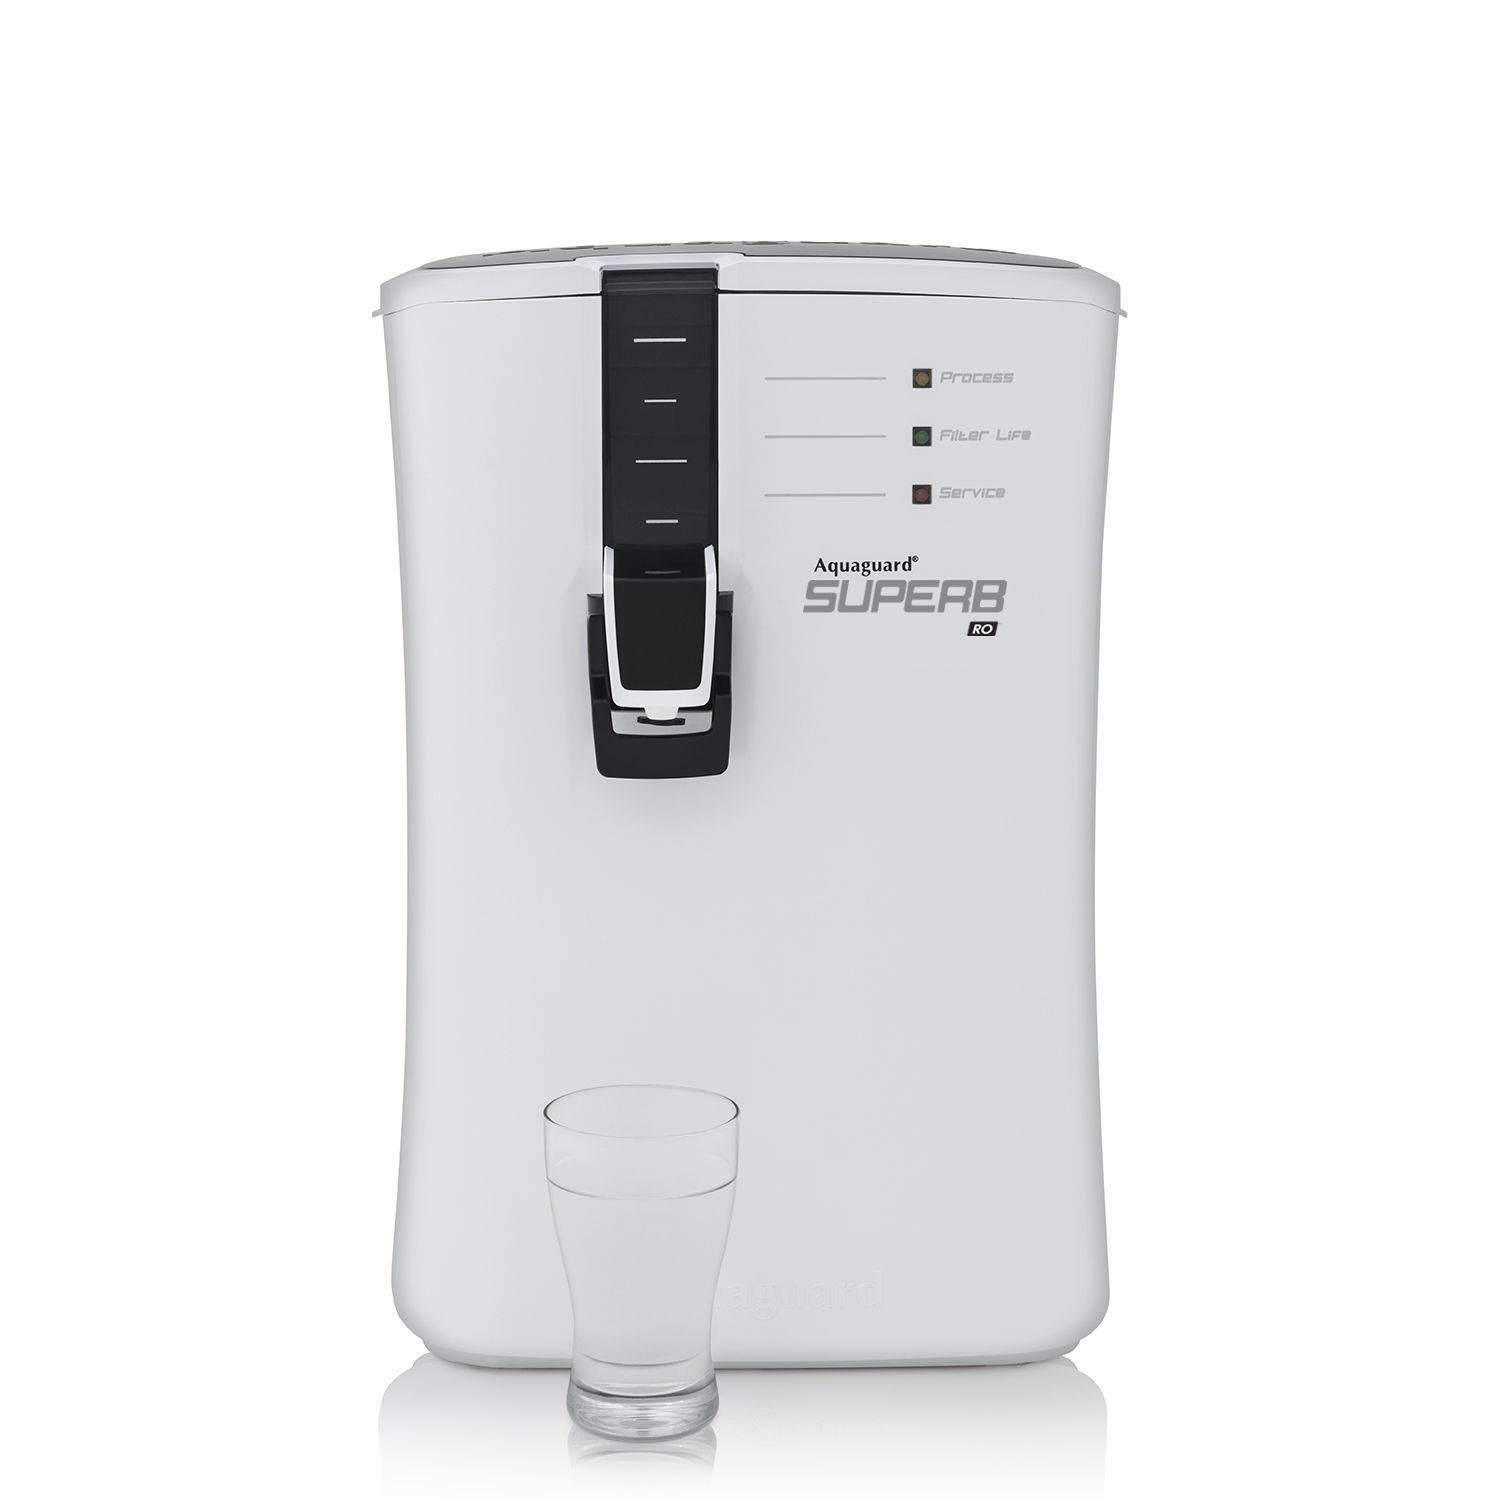 ro water purifiers ro water purifiers online at best prices